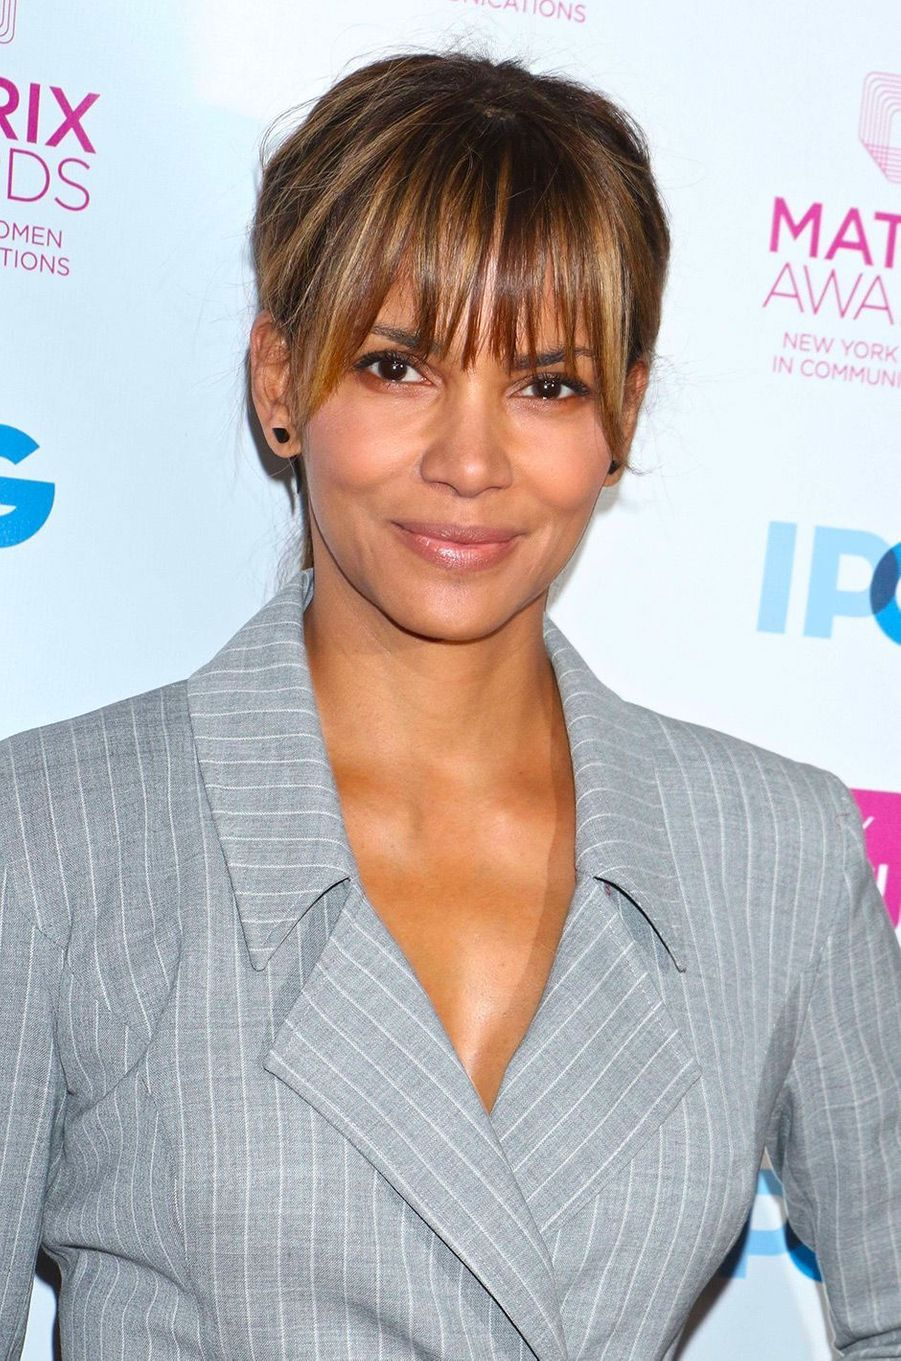 Halle Berry à la cérémonie des Matrix Awards